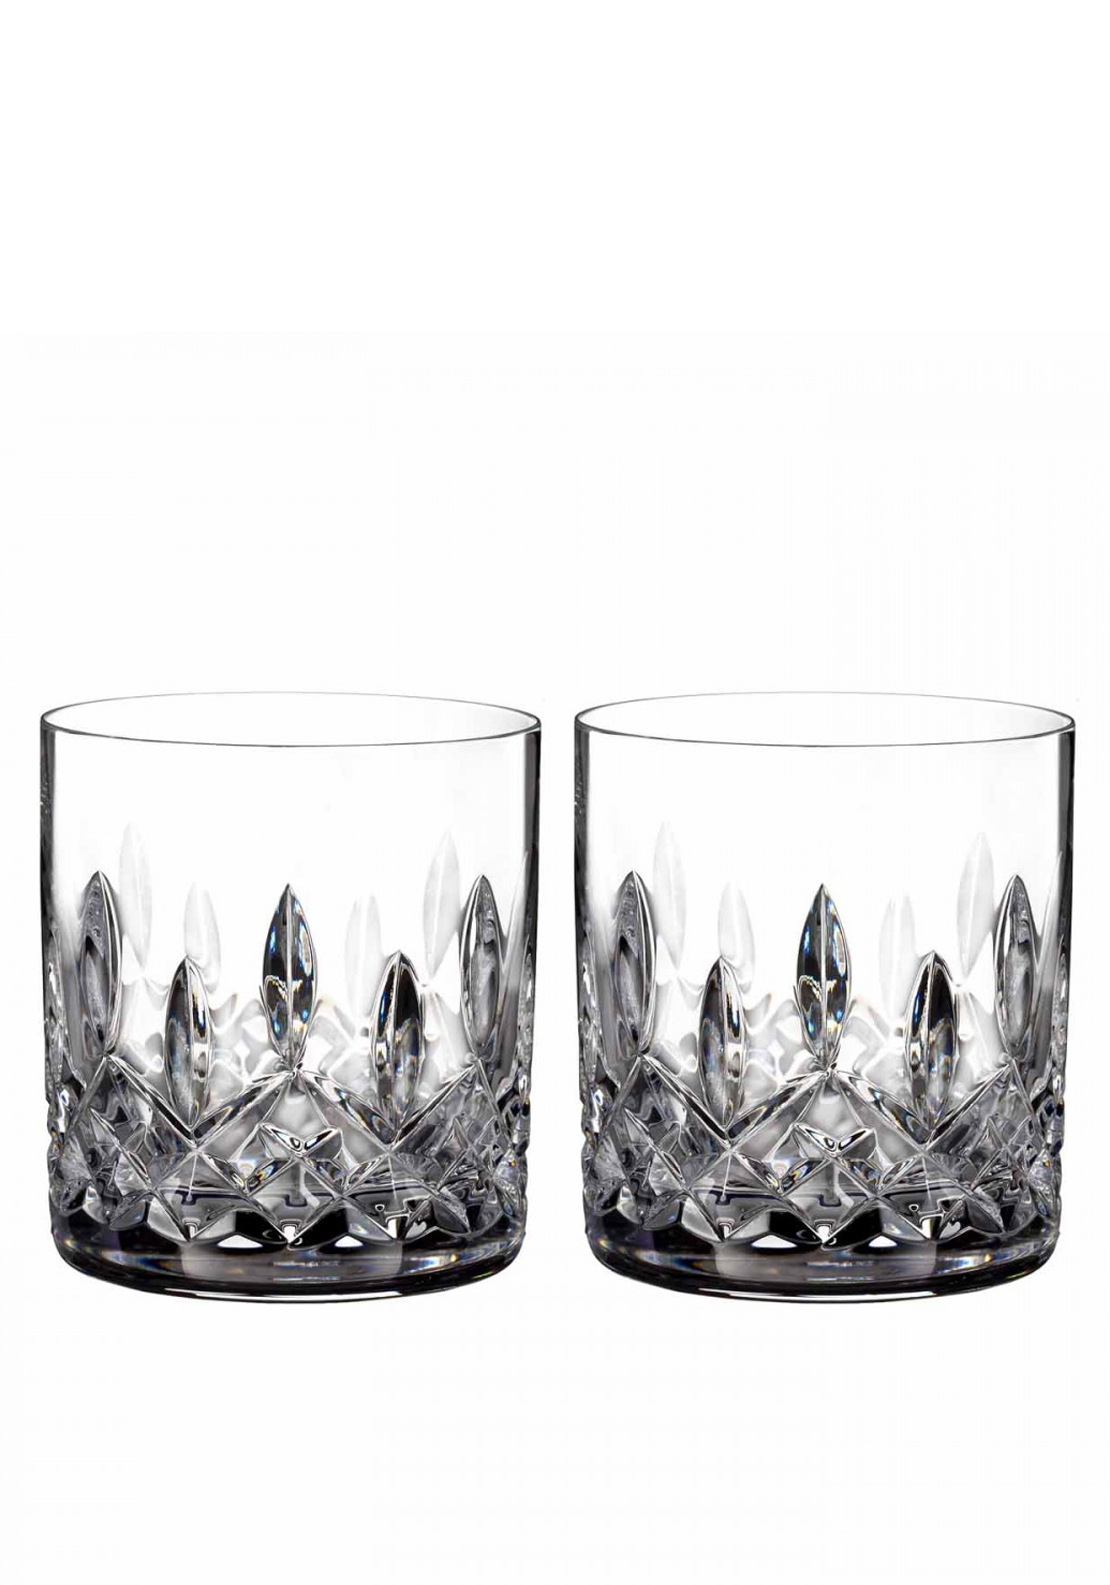 Waterford Crystal Lismore Classic Tumbler, Set of 2